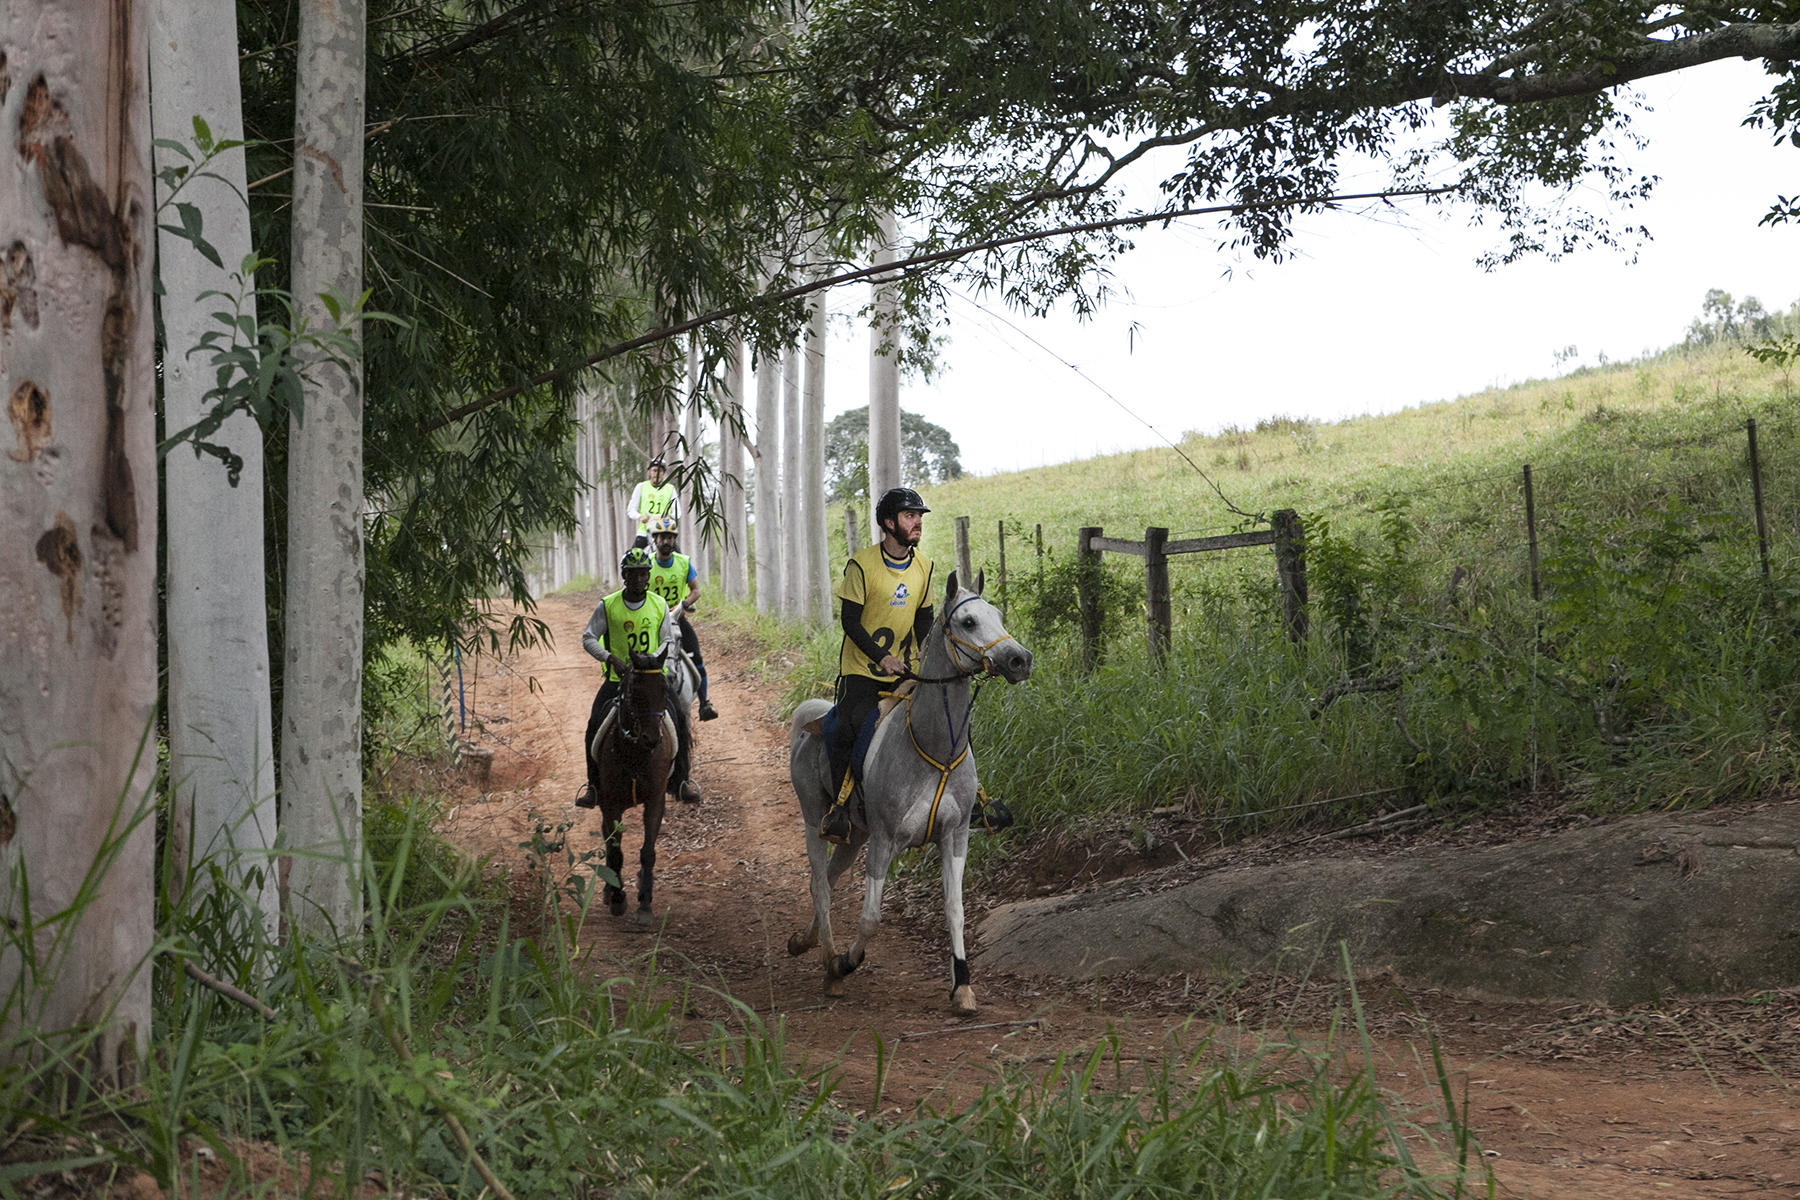 Endurance World Bragança Paulista. Competitors riding in the forest.